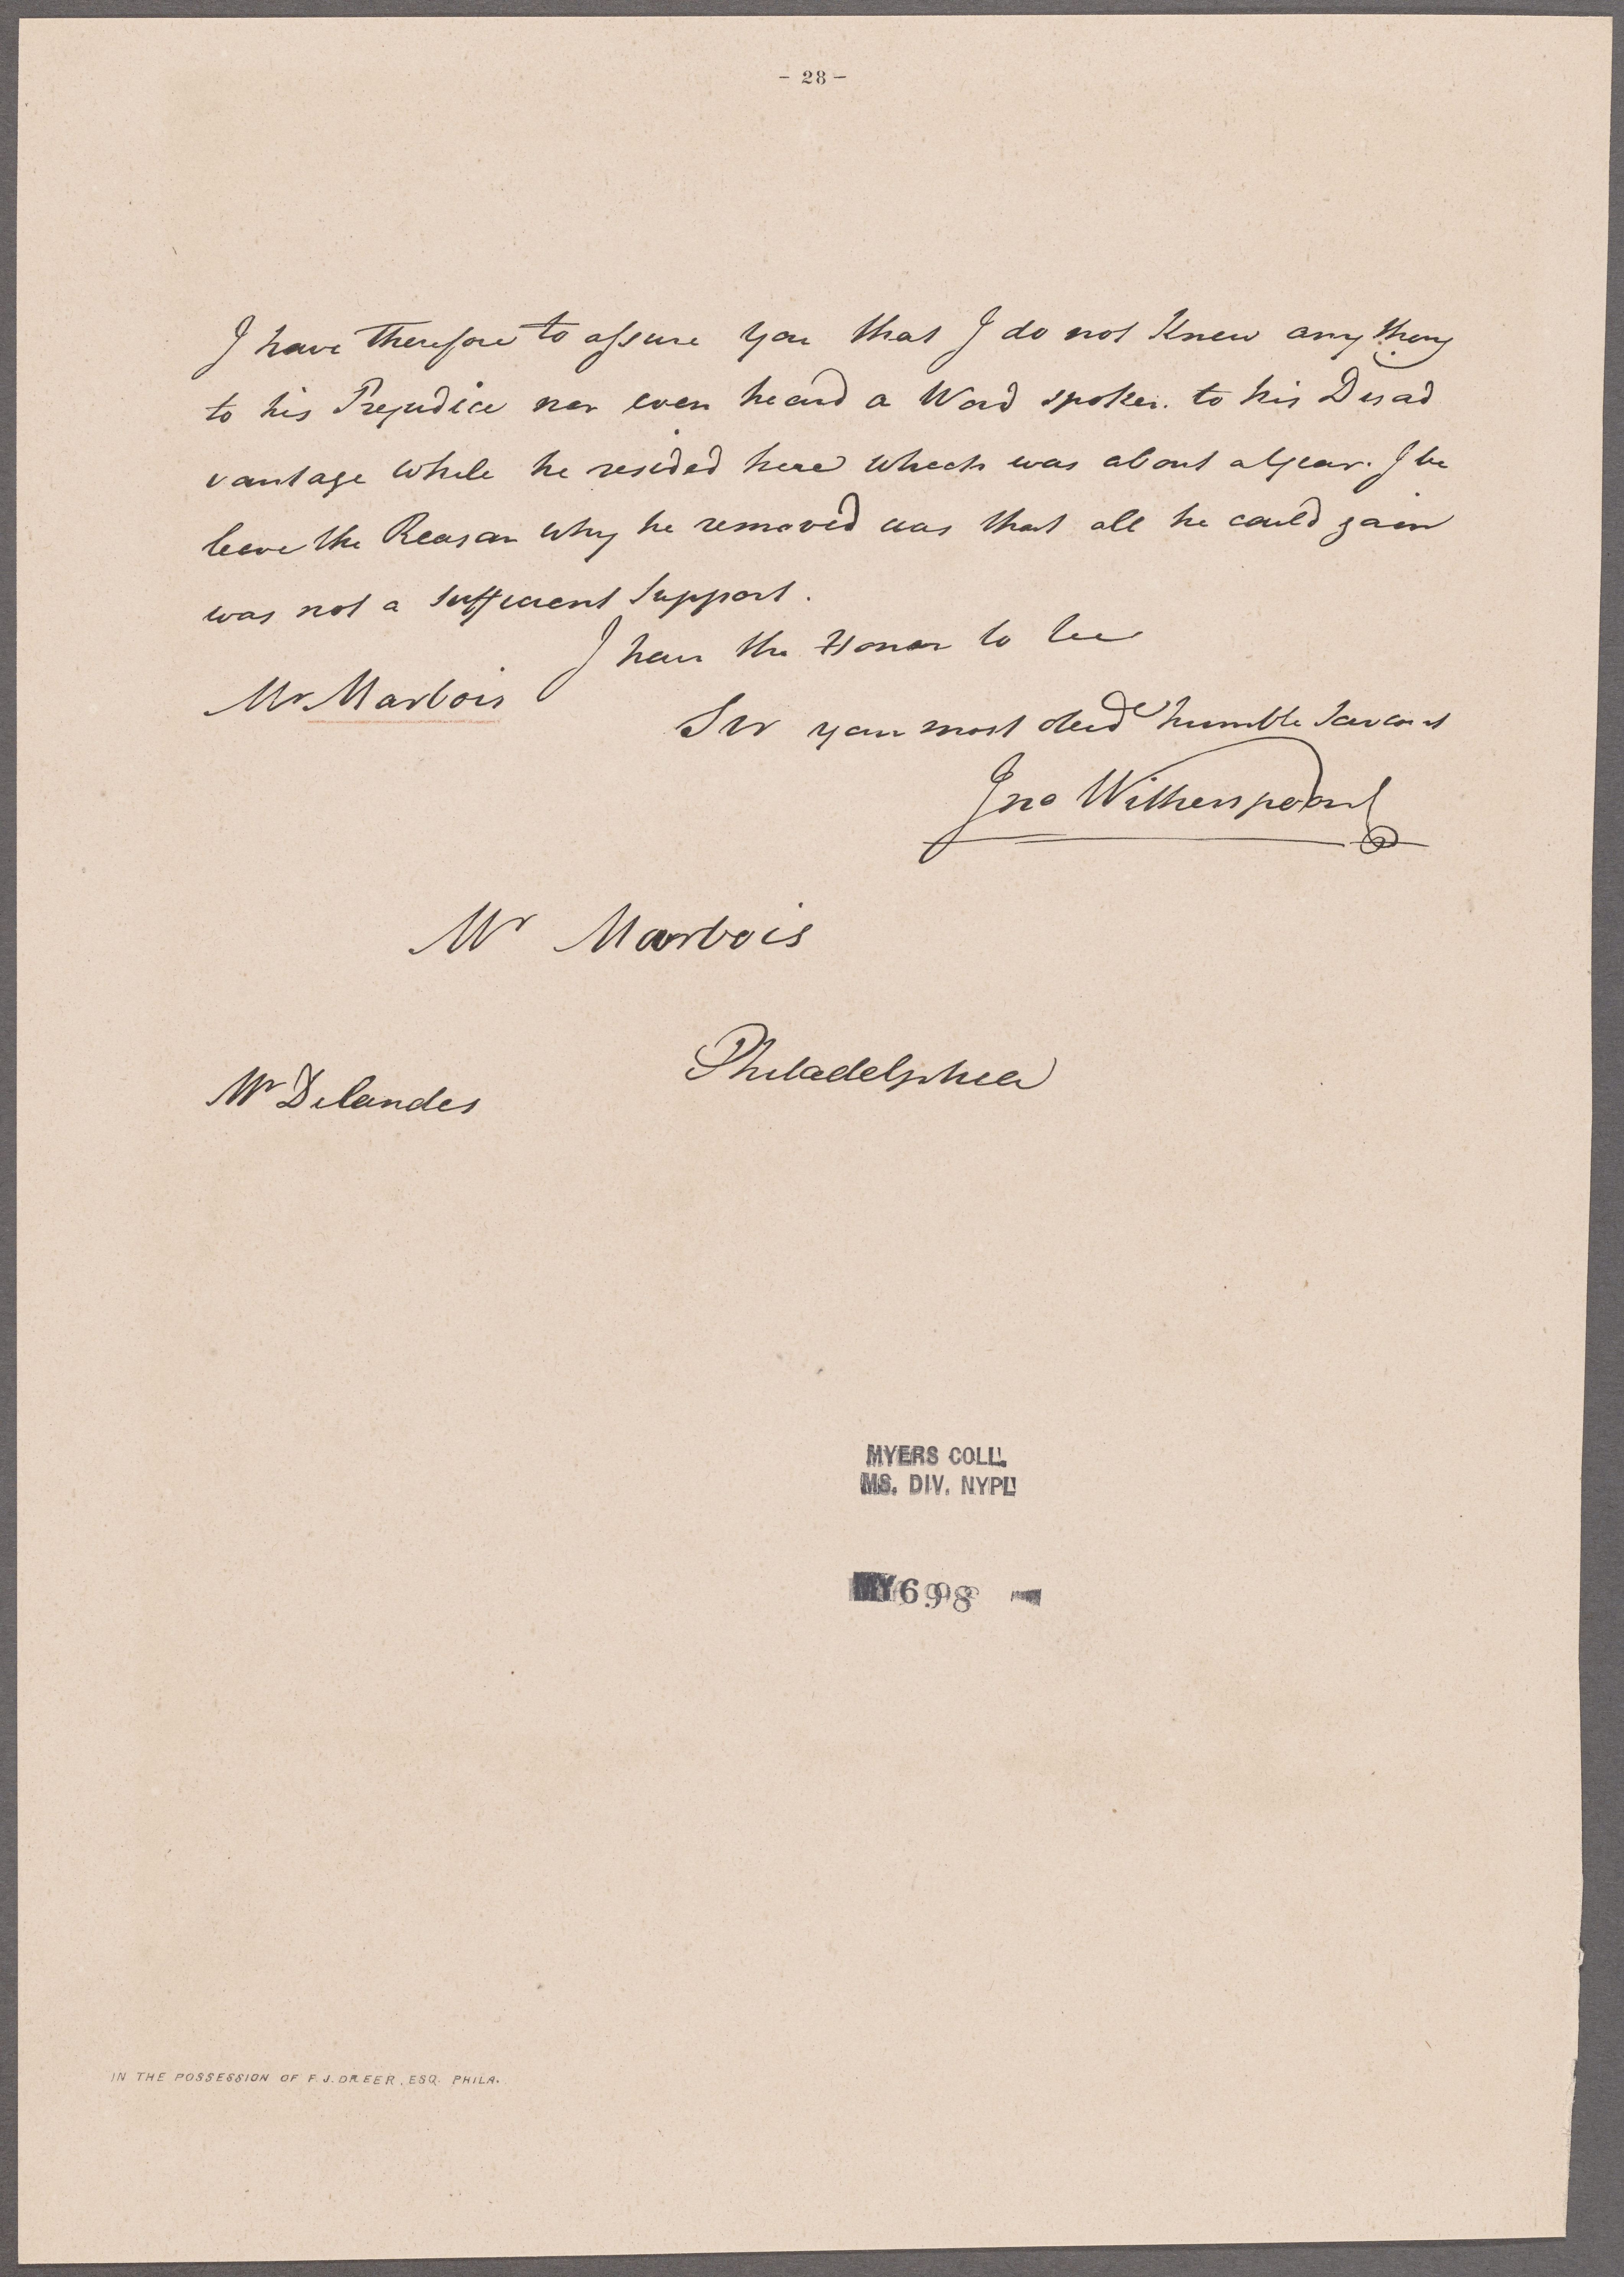 File:Witherspoon, John  Tusculum  To Mr  Marbois (NYPL